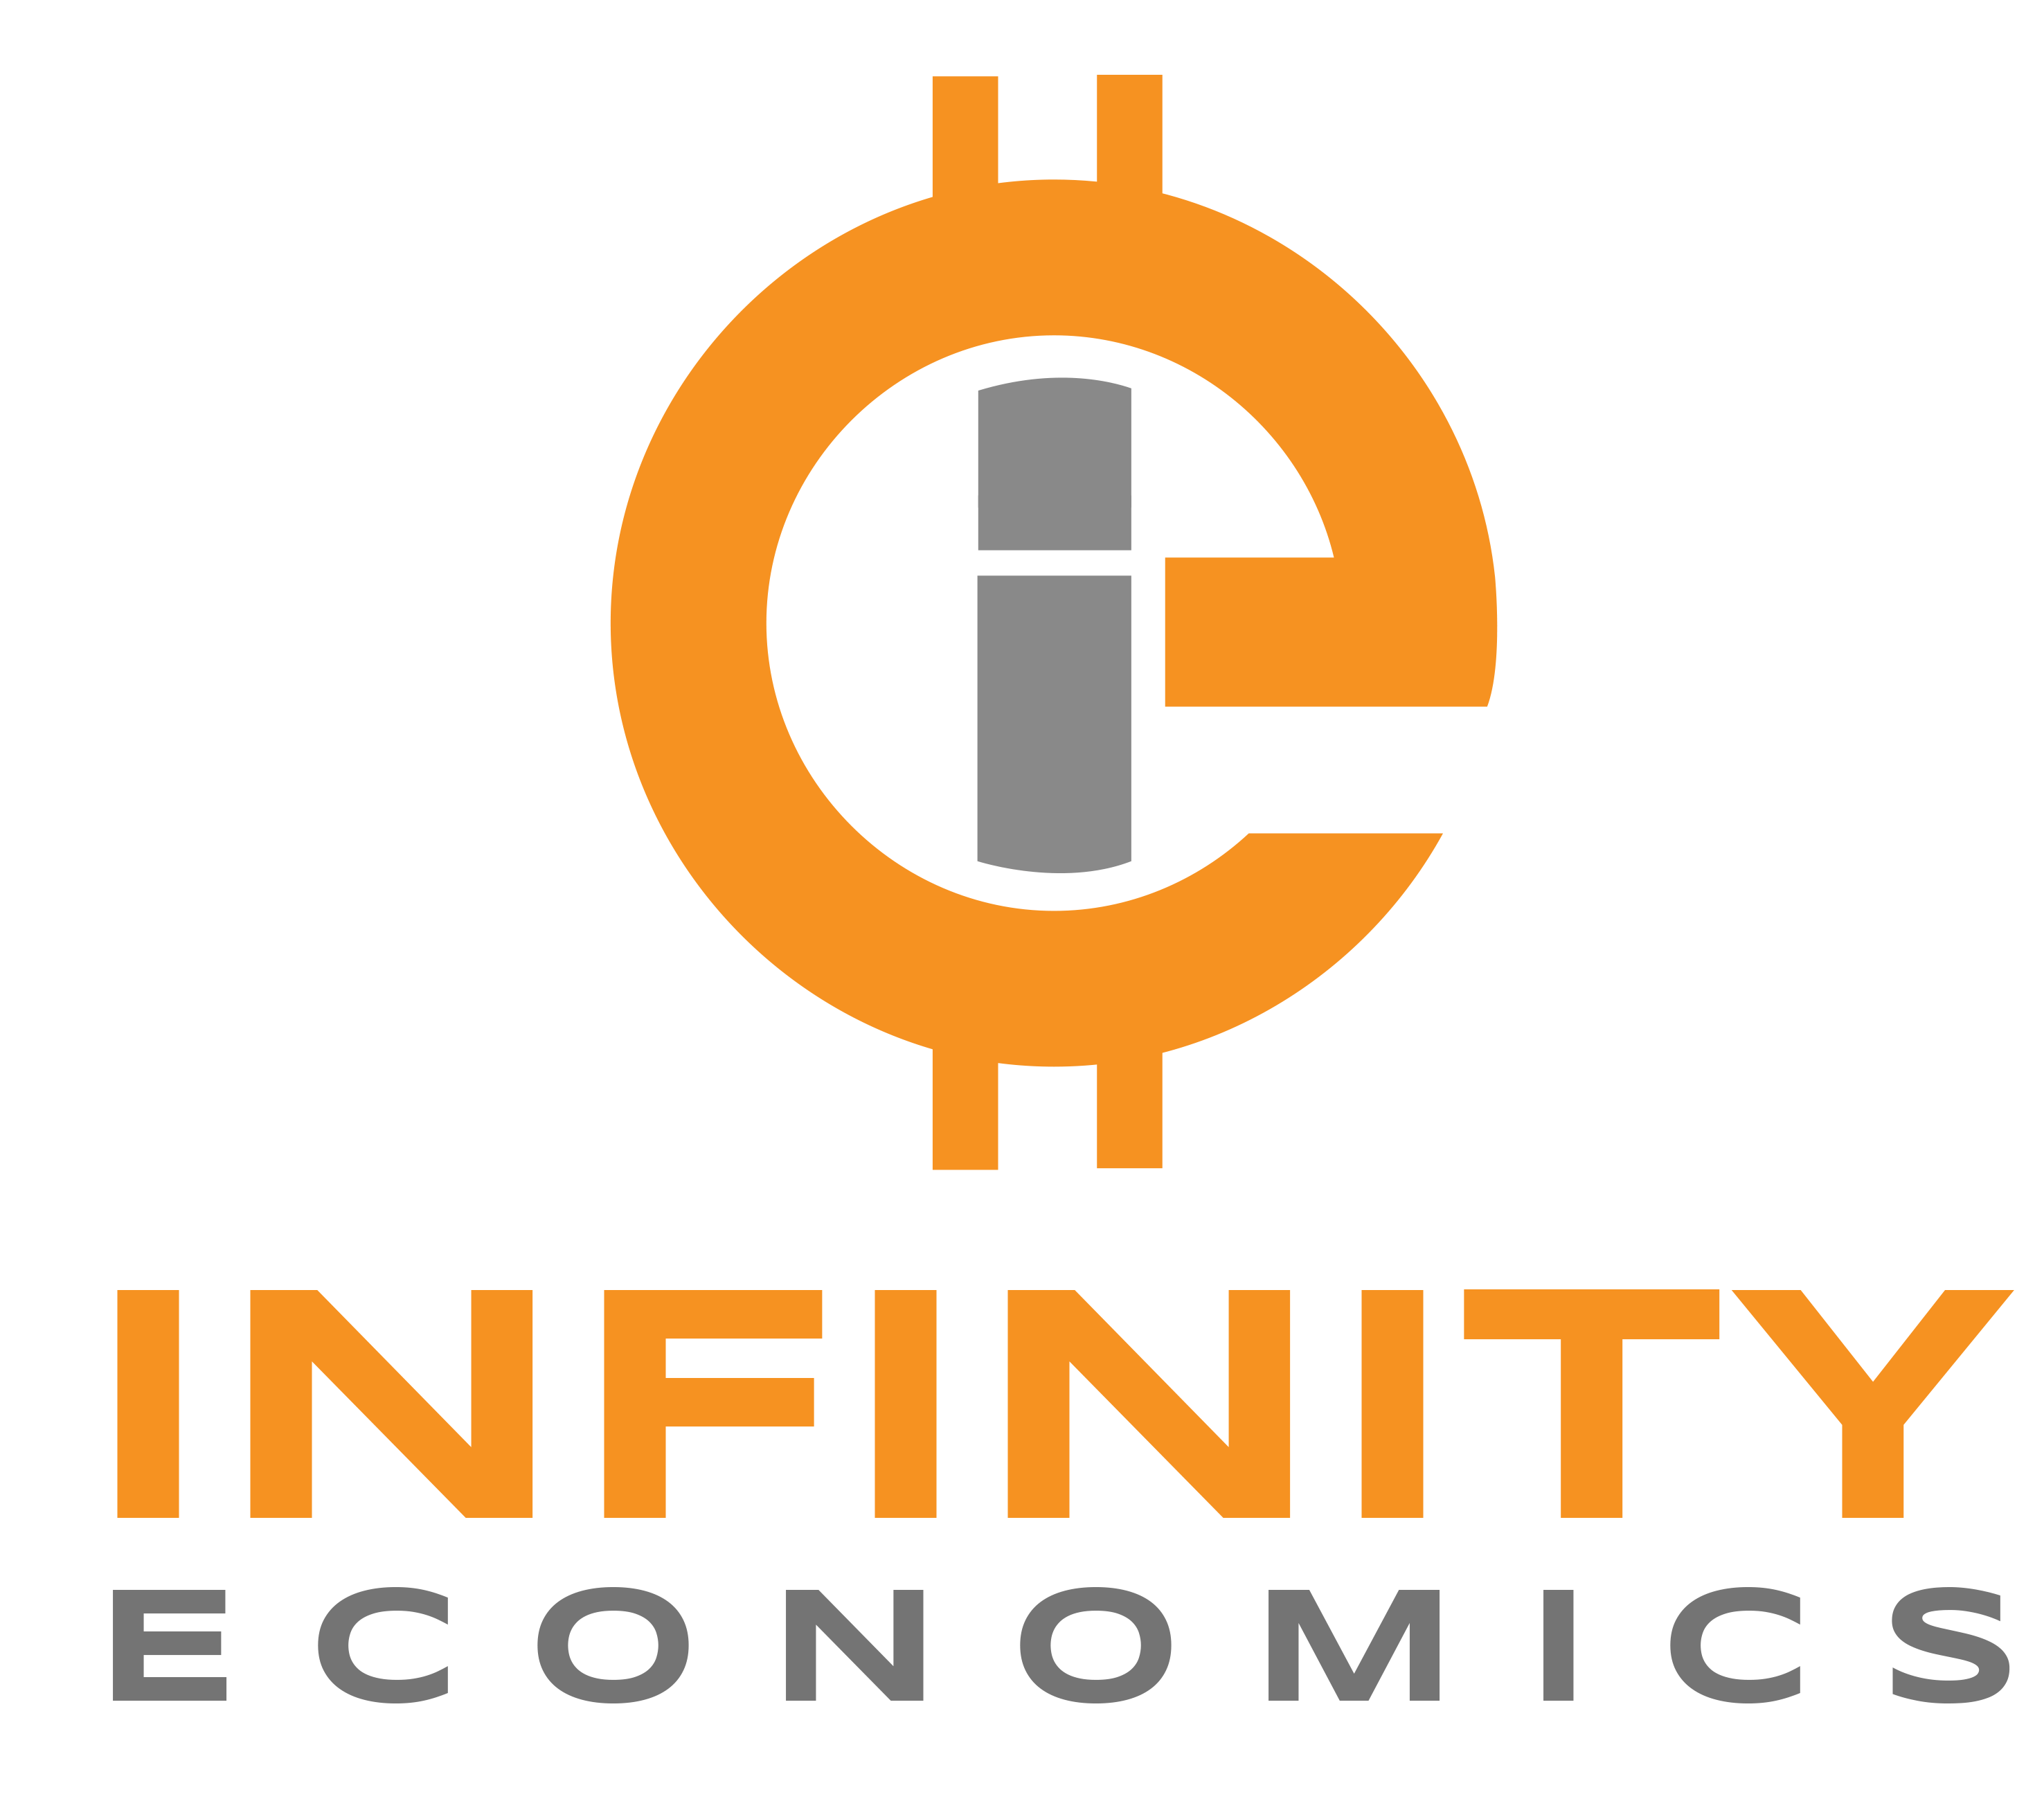 Infinite coins crypto currency baseball game online mlb betting